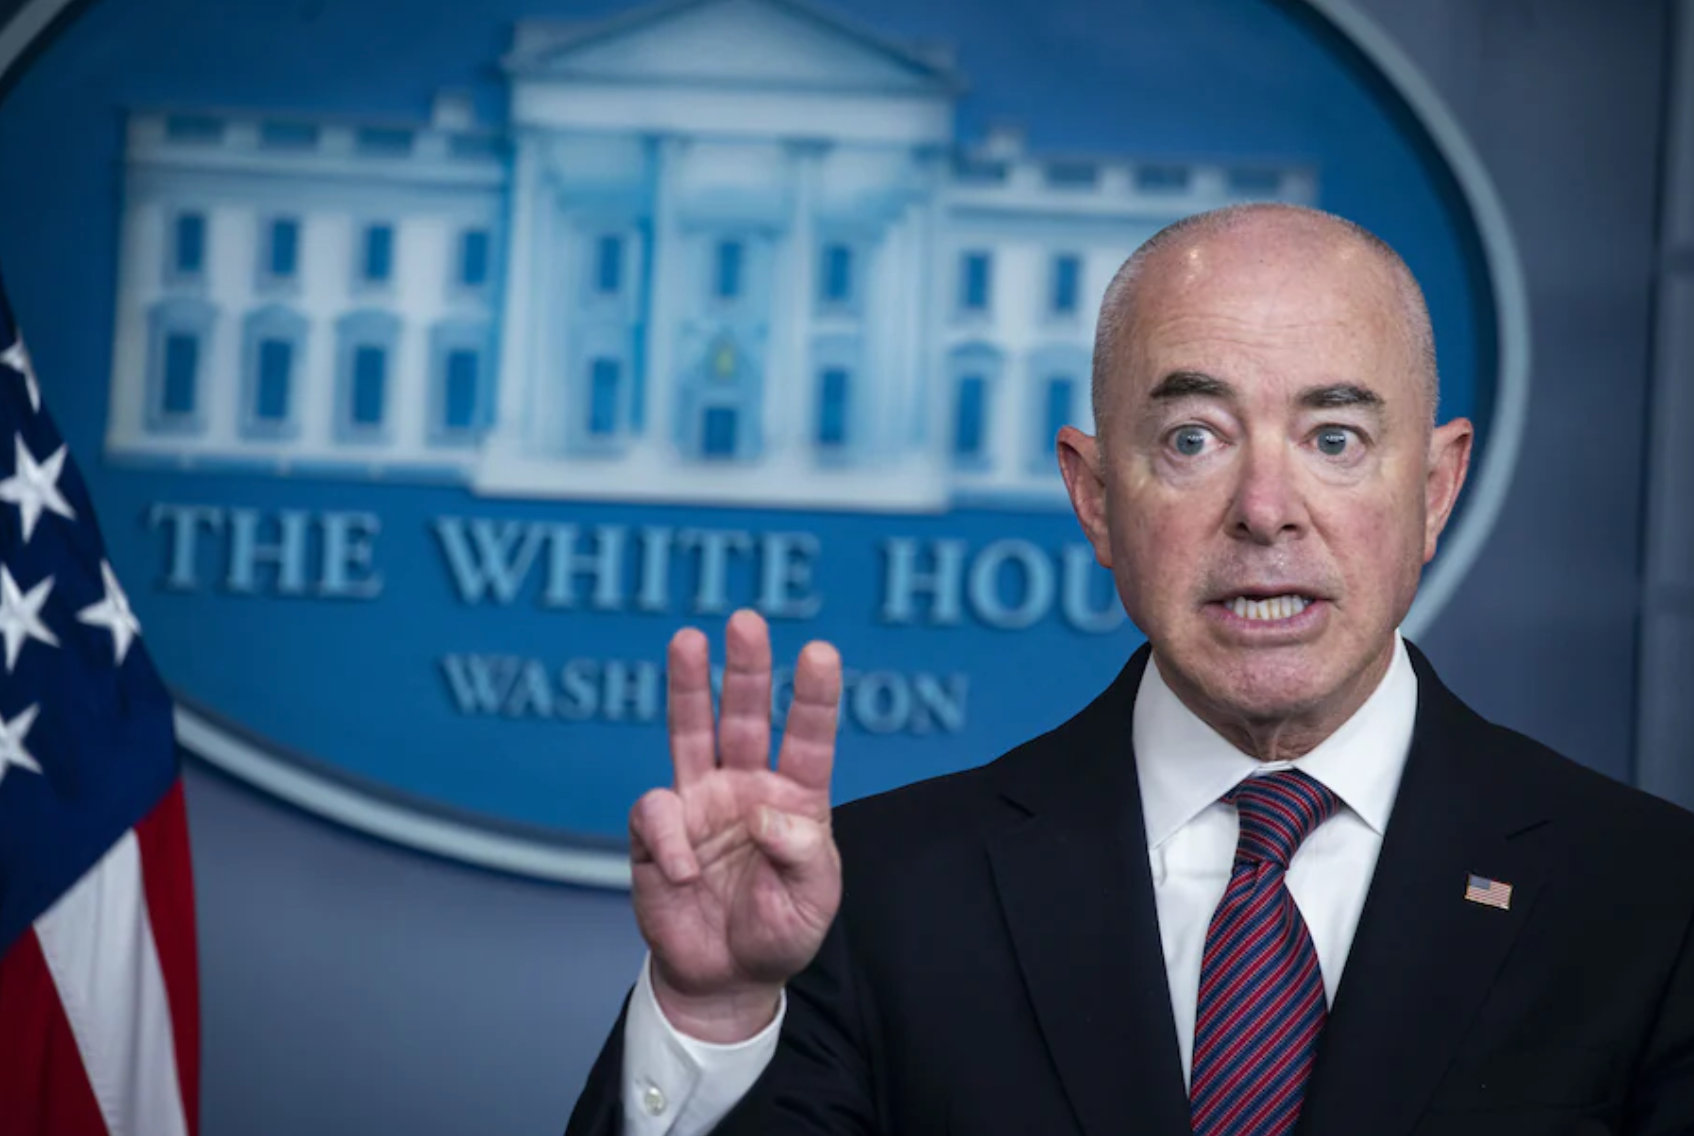 DHS issues new arrest and deportation guidelines to immigration agents